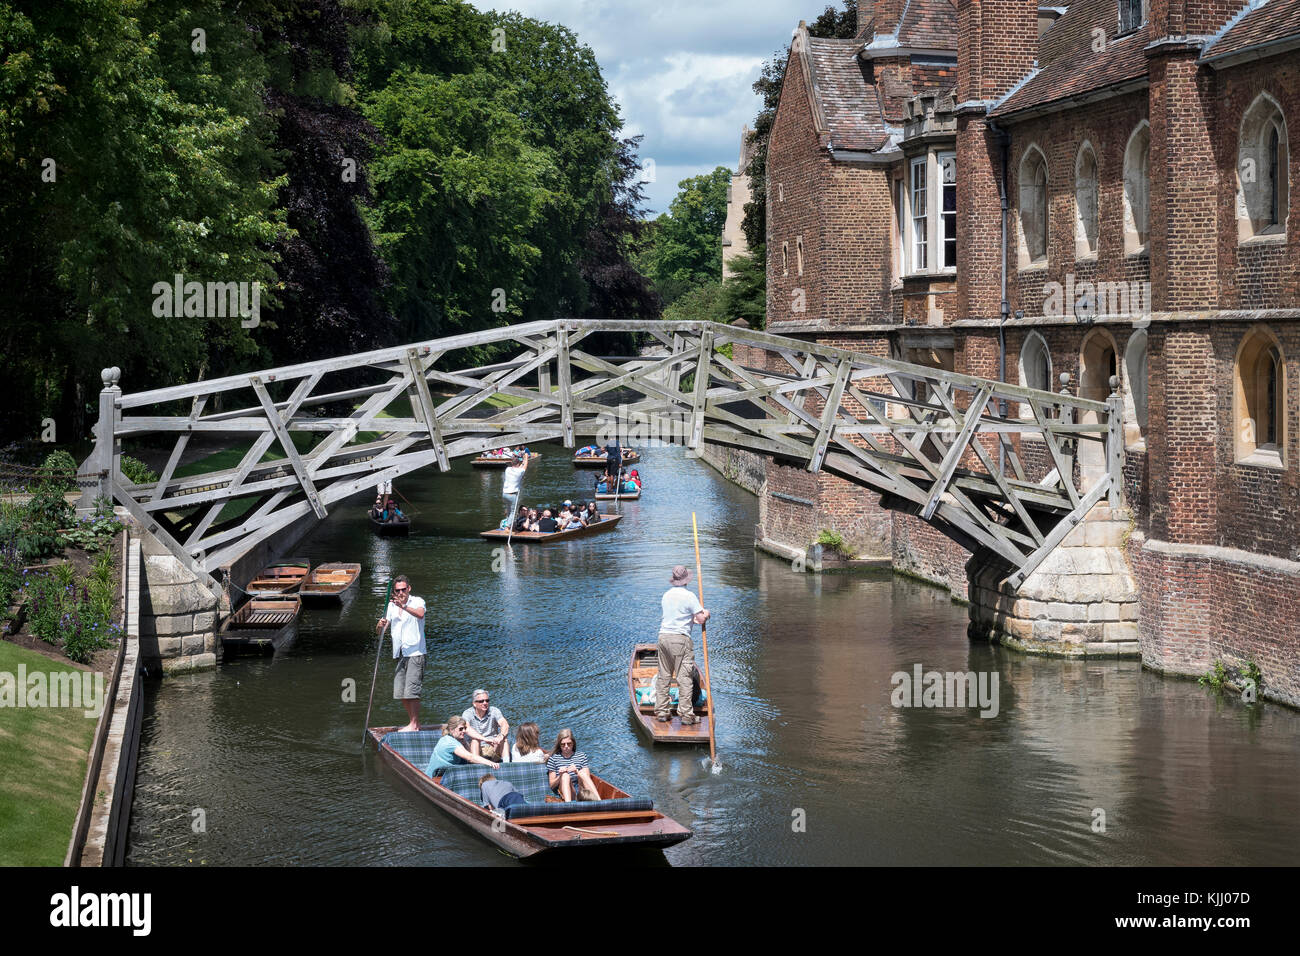 QUEENS COLLEGE (1448) & RIVER CAM   CAMBRIDGE CAMBRIDGESHIRE  UNITED KINGDOM - Stock Image